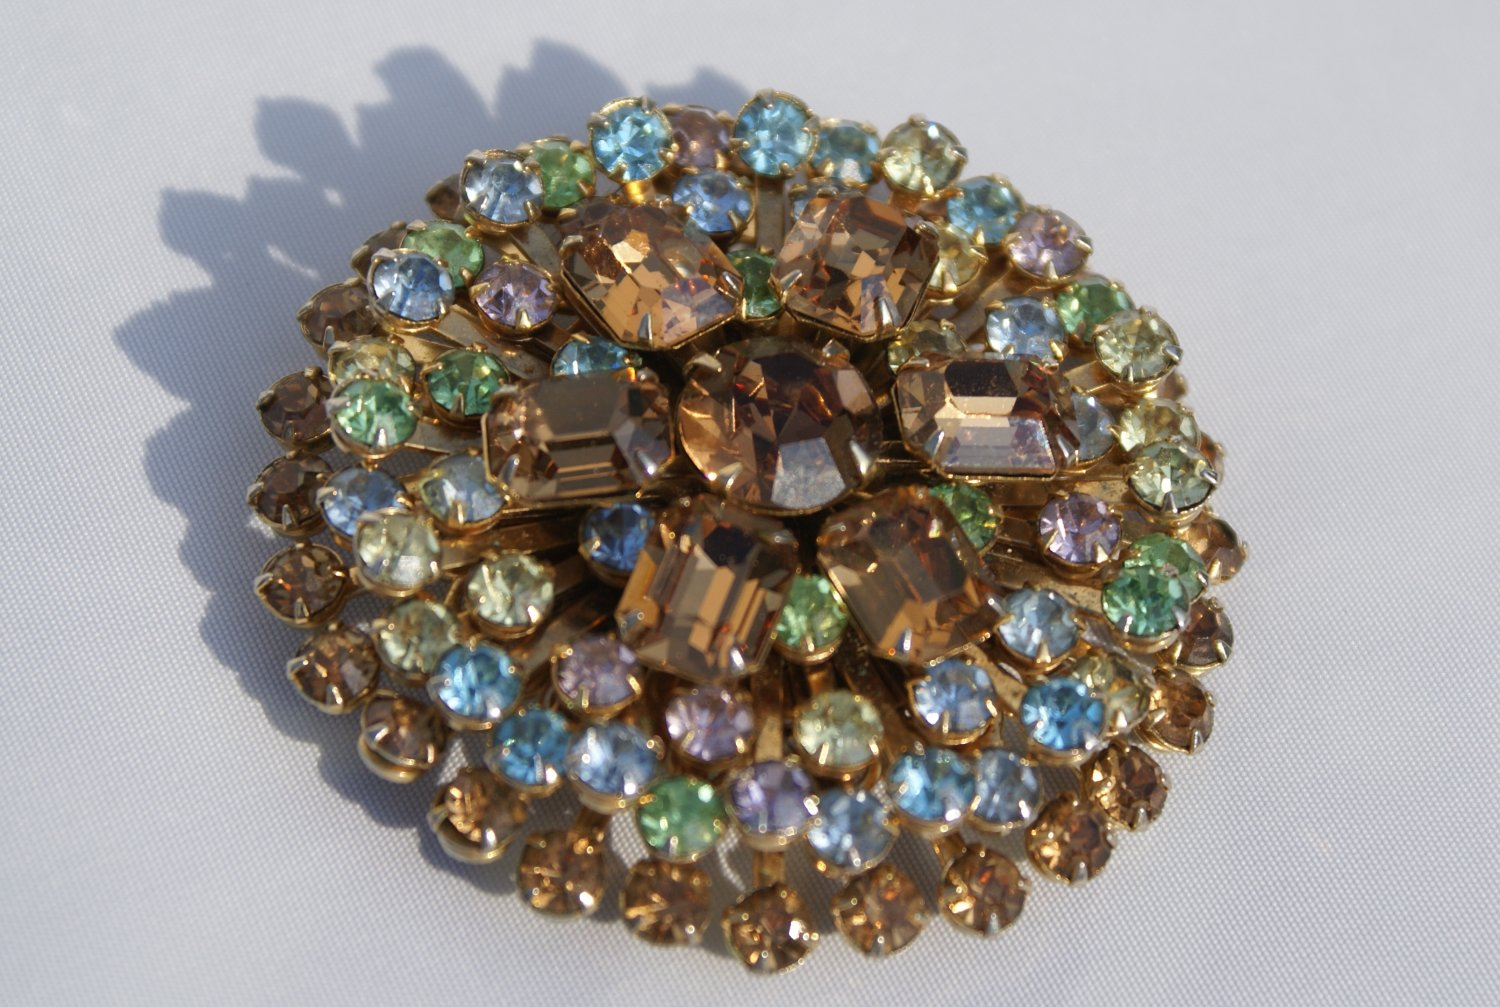 Vintage Juliana Brooch with old European finely cut masterpiece stones c1920